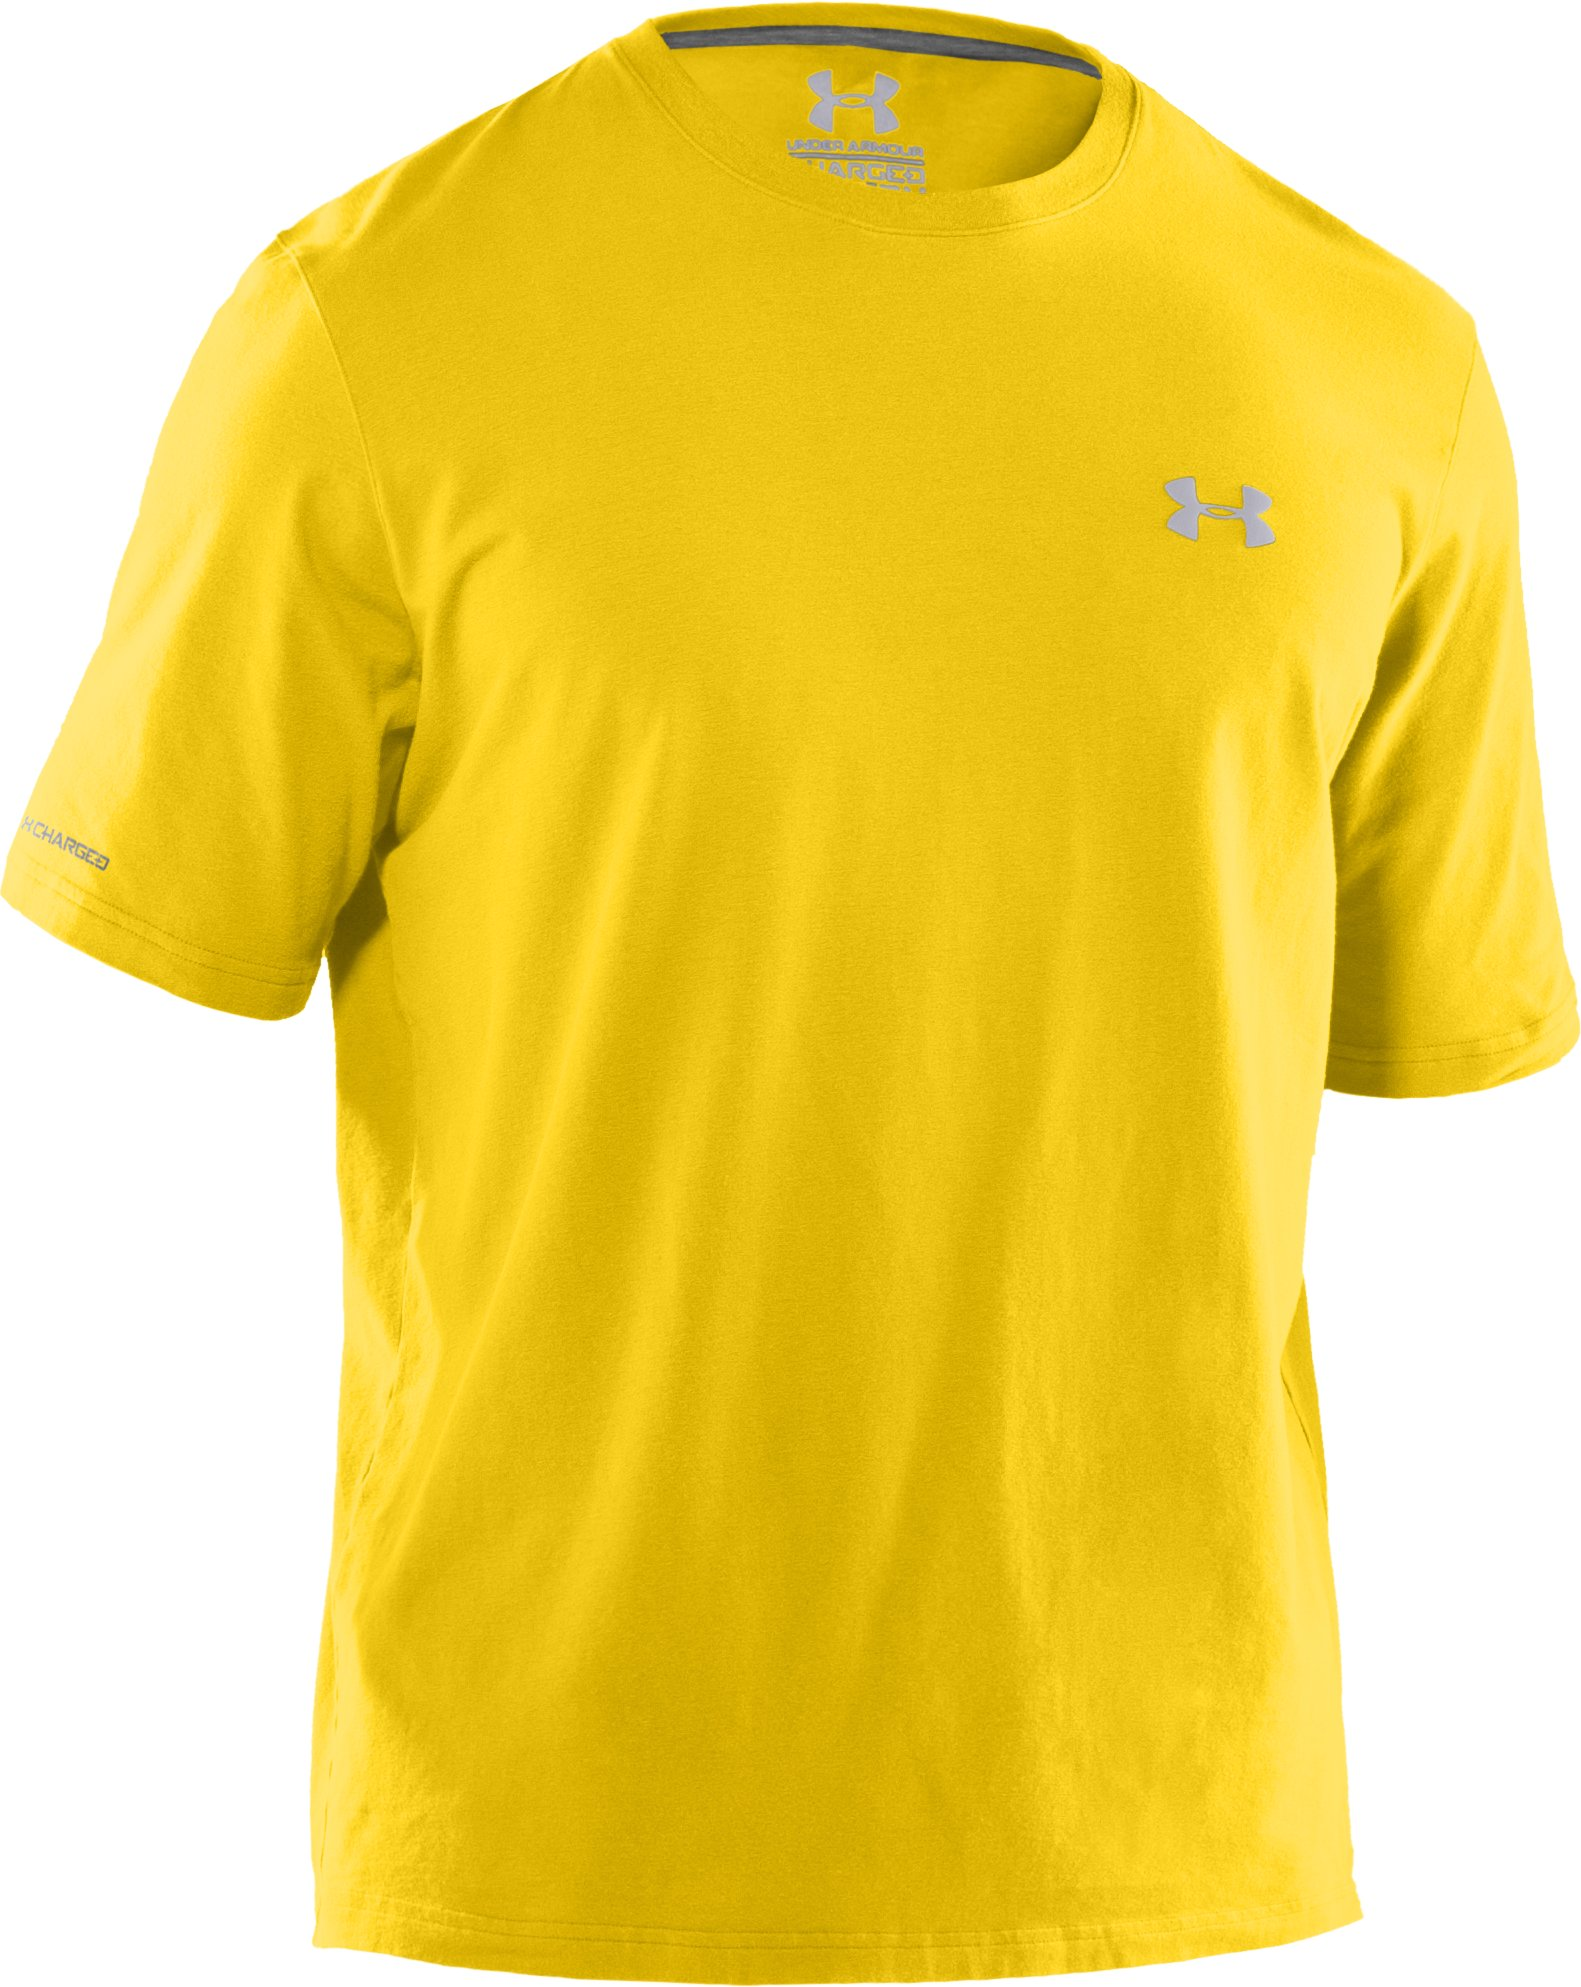 Men's Charged Cotton® T-Shirt, Taxi, undefined